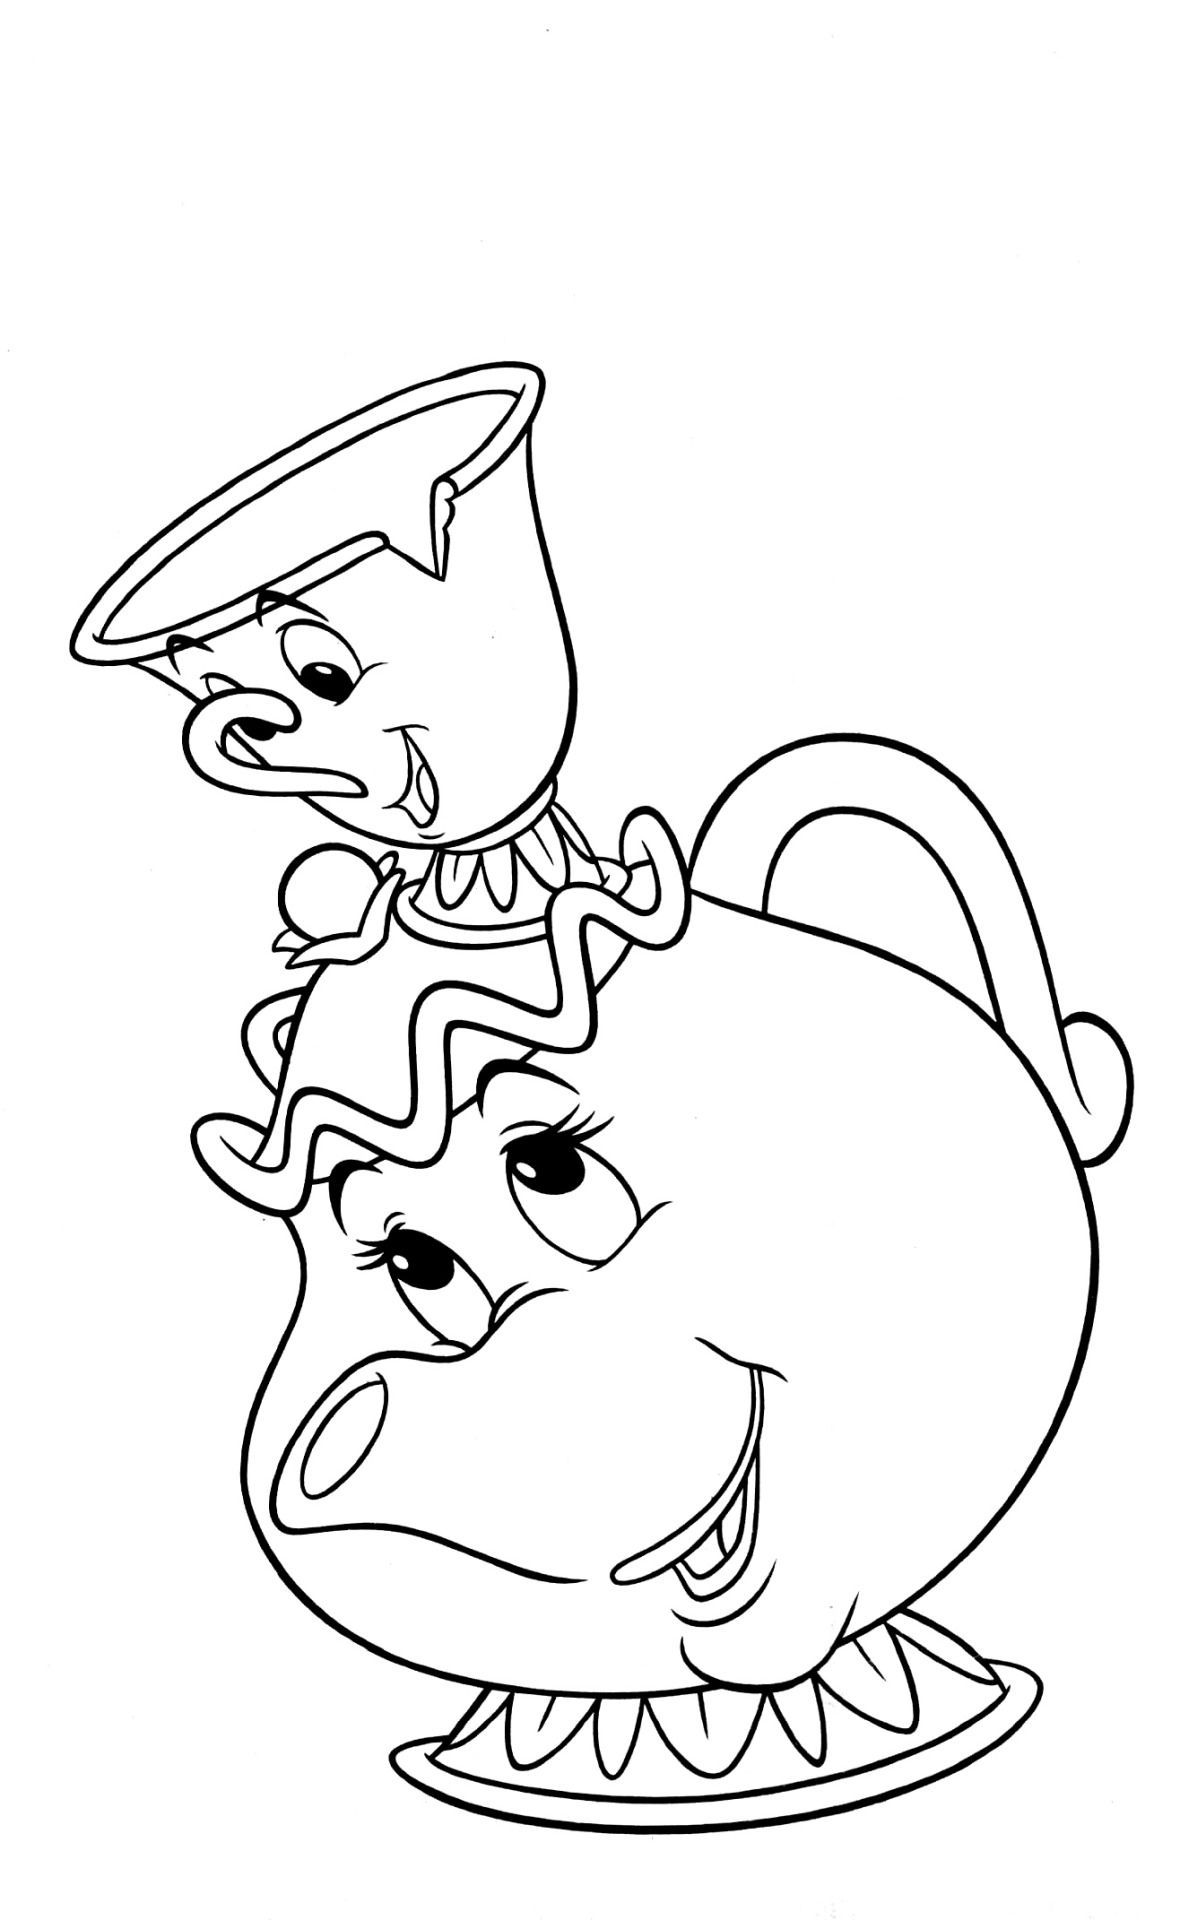 16+ Beauty and the beast chip coloring page free download